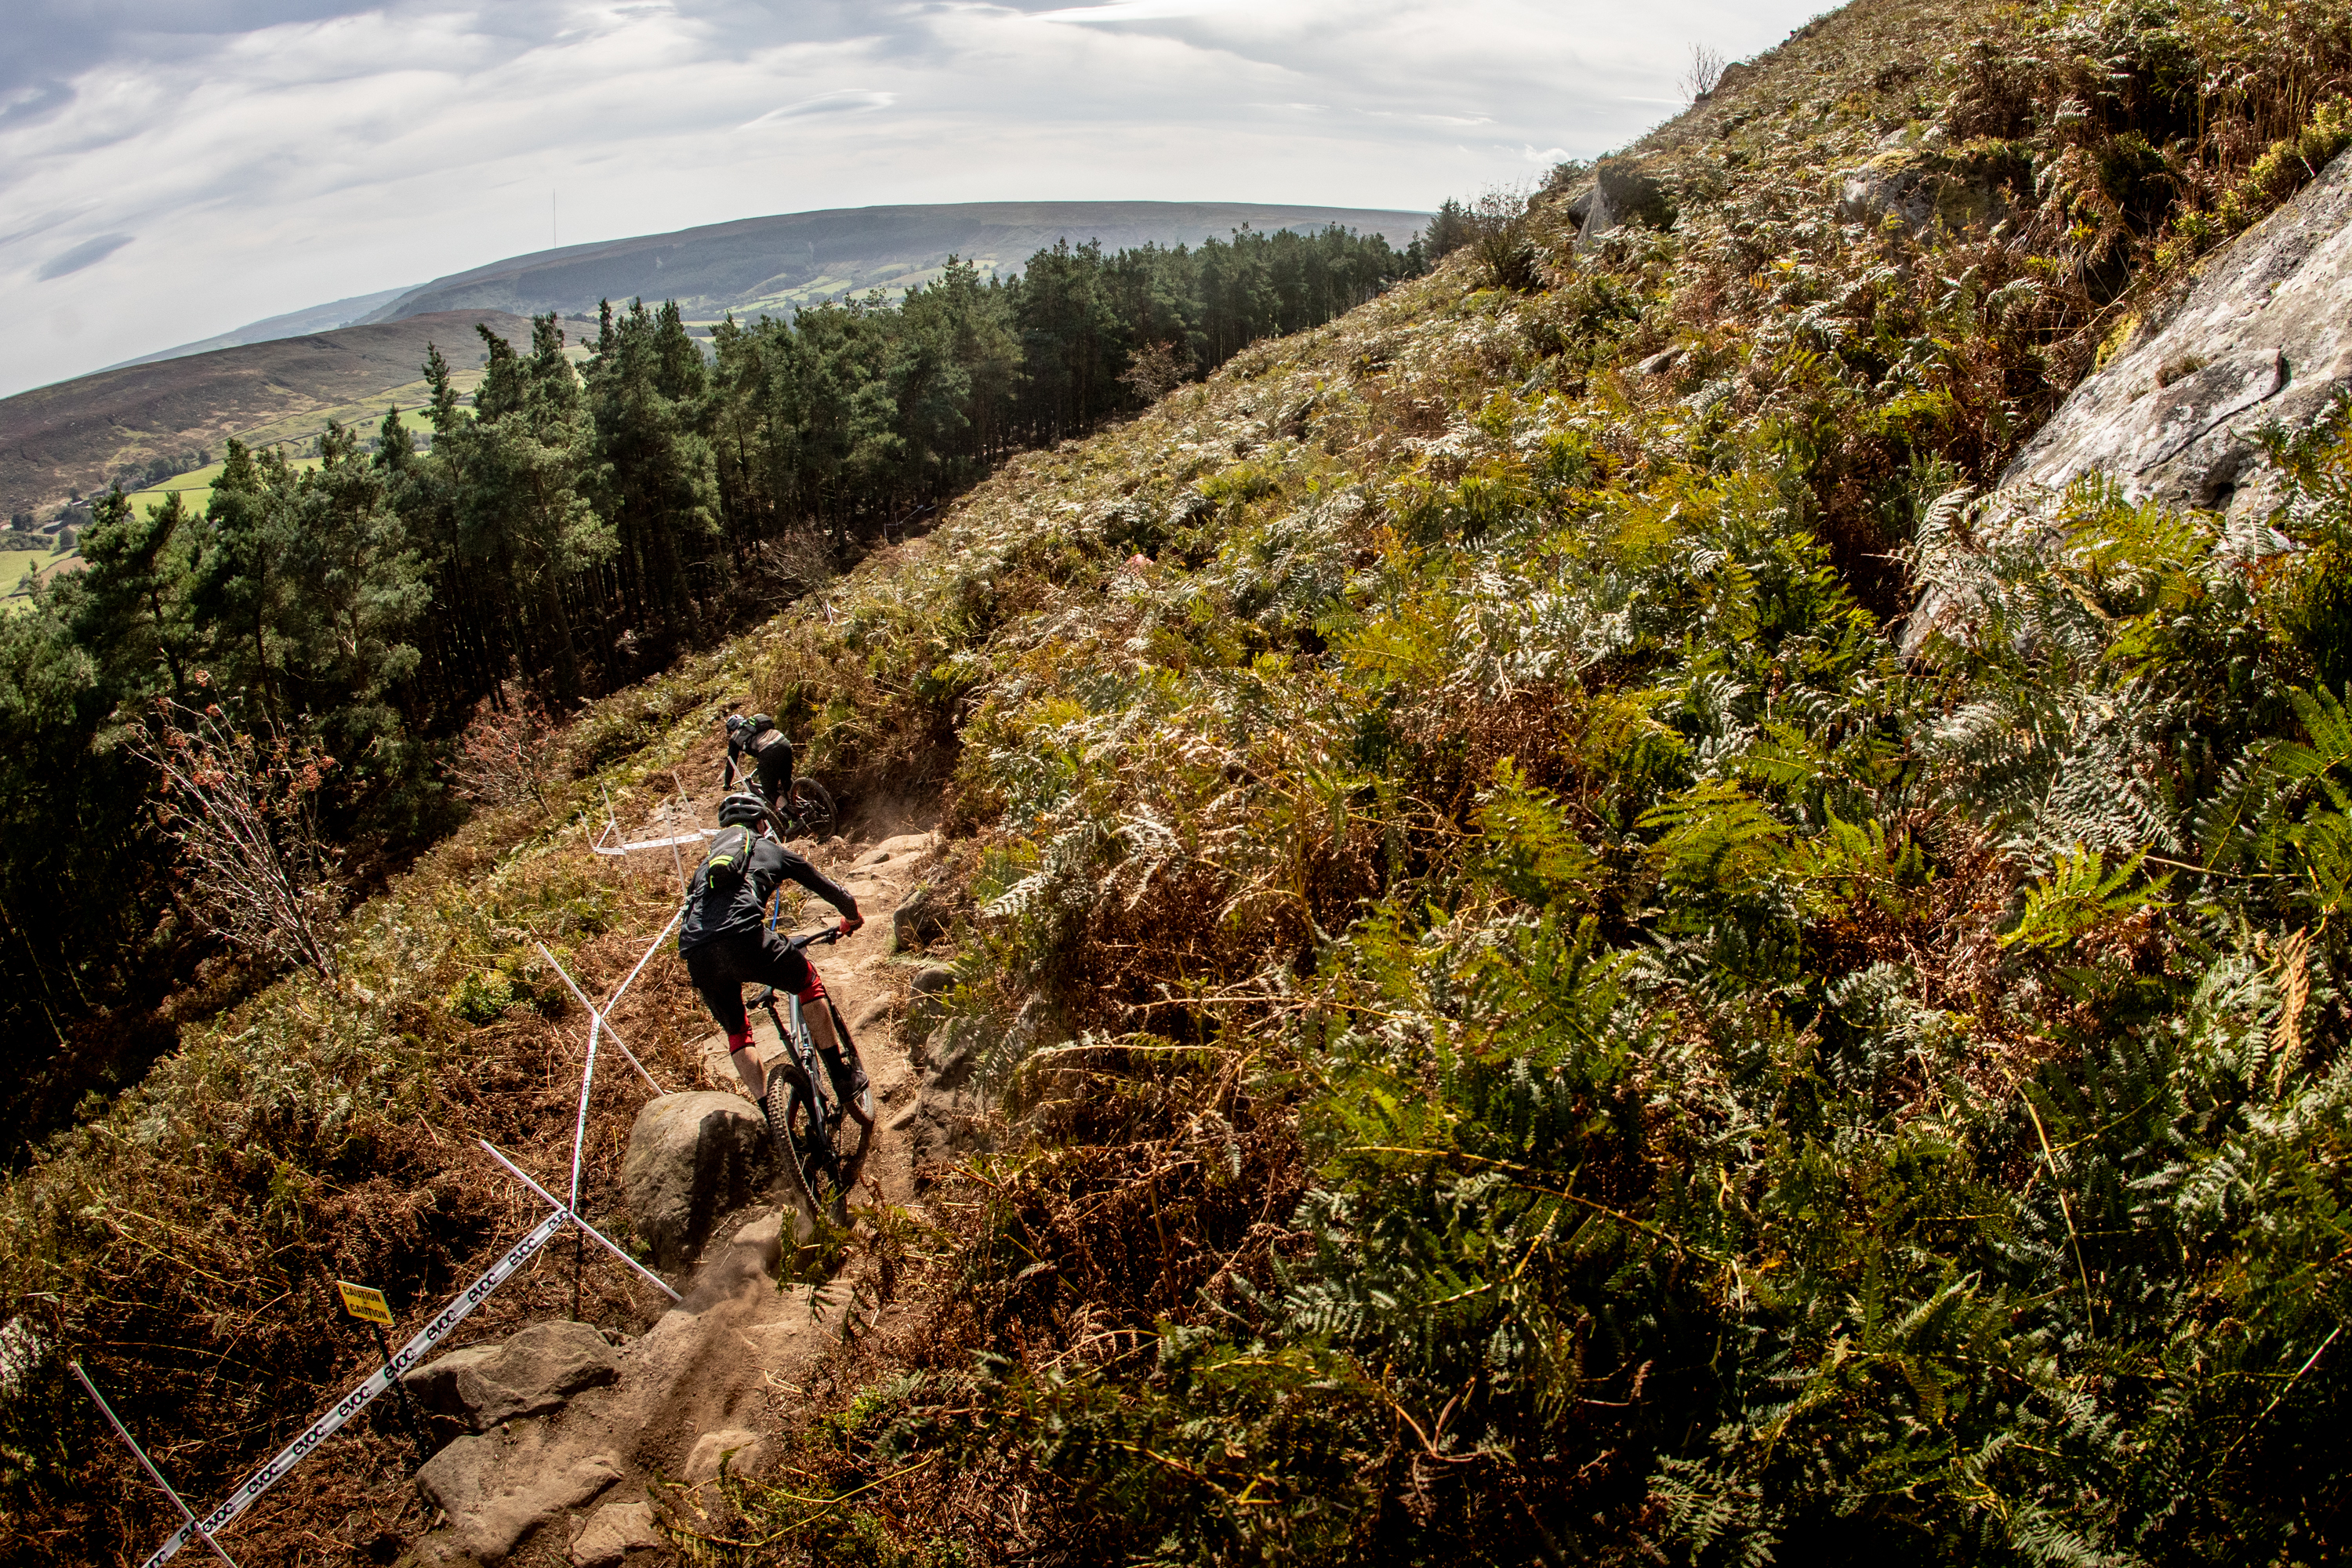 'Ard Moors Enduro was possibly the most 'Ard fun yet